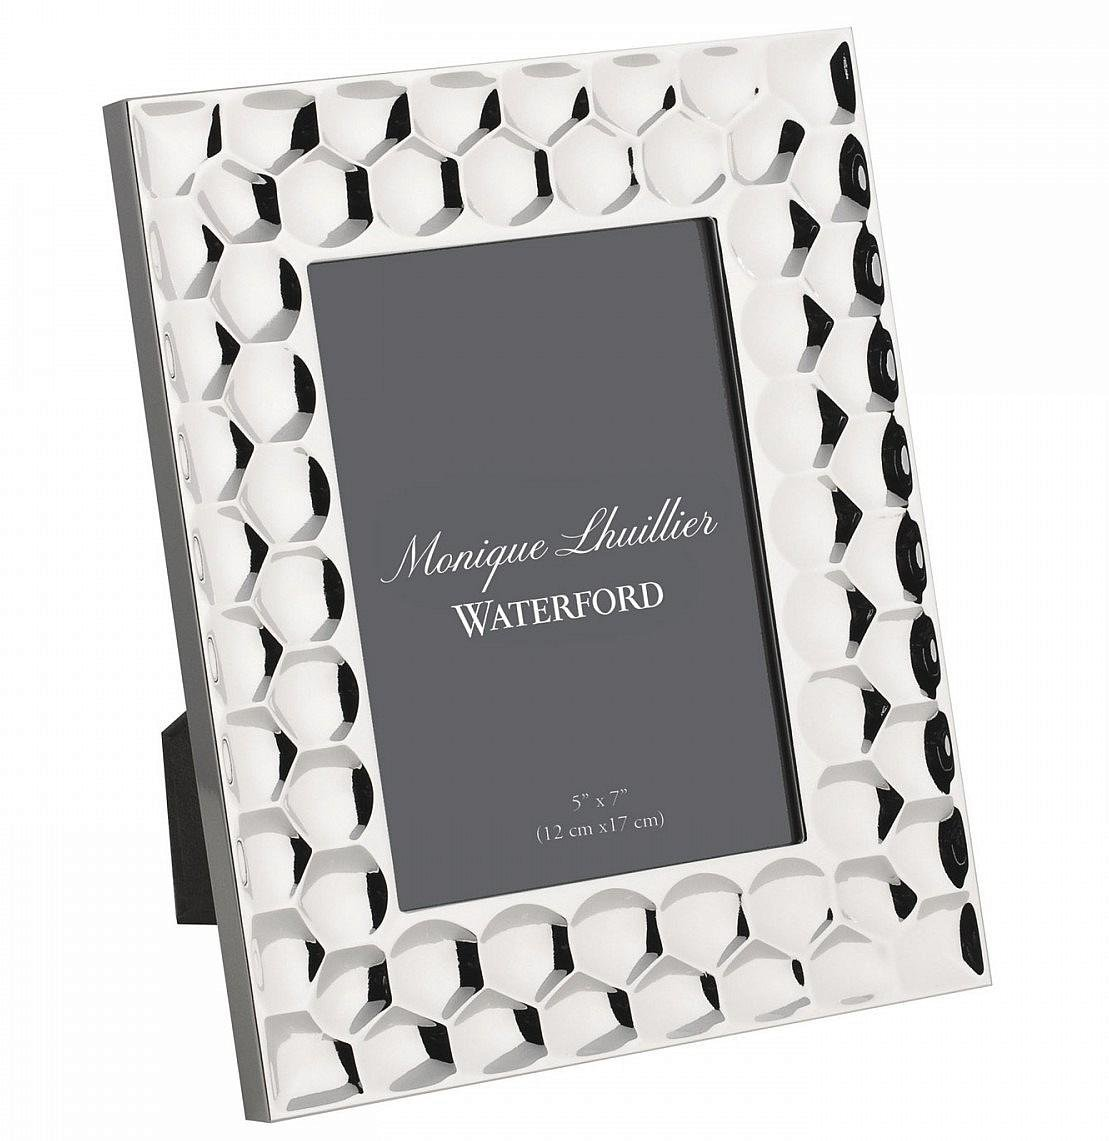 5x7 ATELIER METAL 5x7 frame by Monique Lhuillier for Waterford